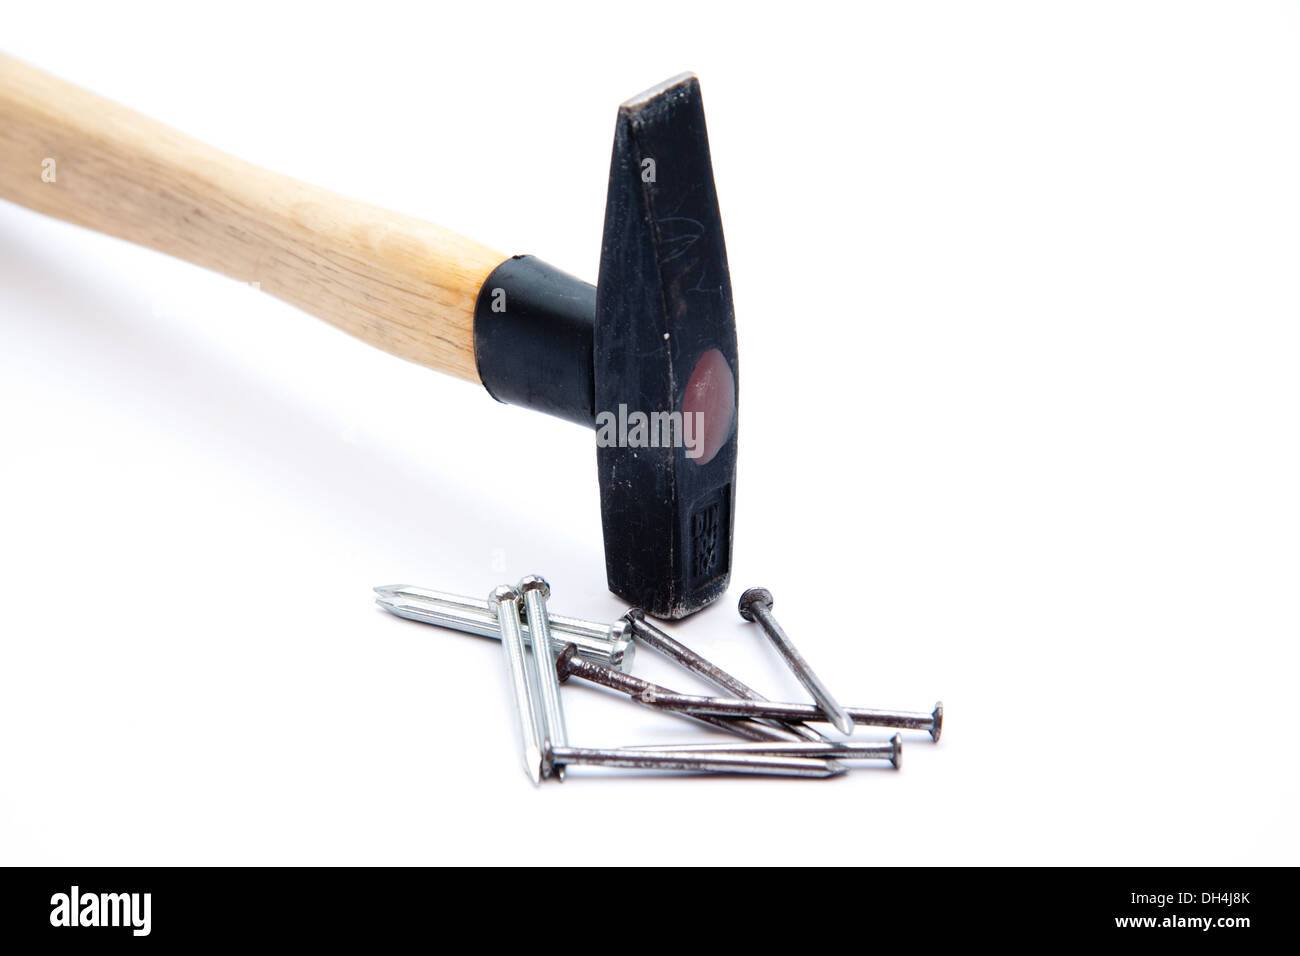 Hammer and nails Photo Stock